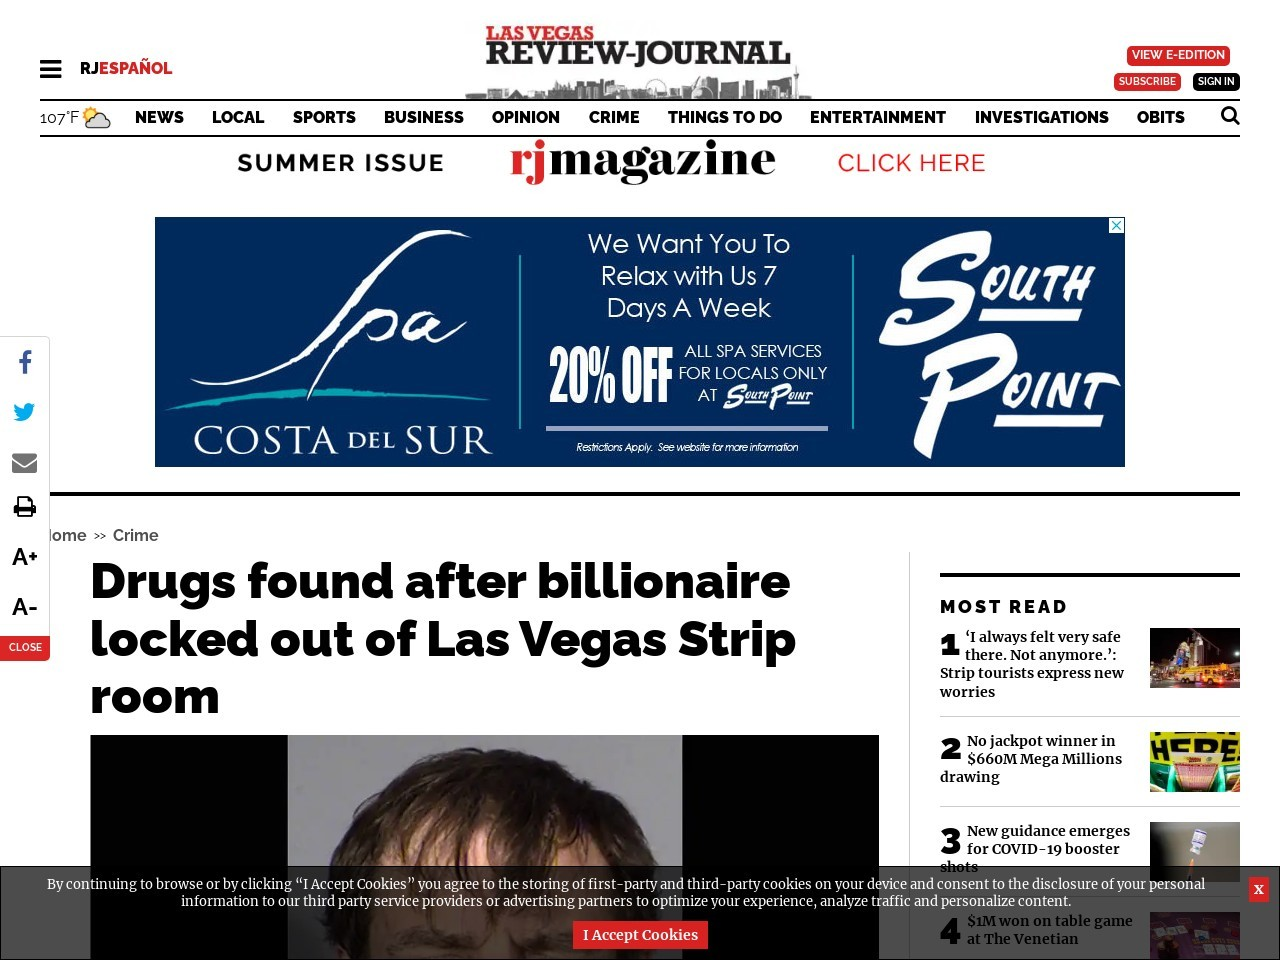 Drugs found after billionaire locked out of Las Vegas Strip room